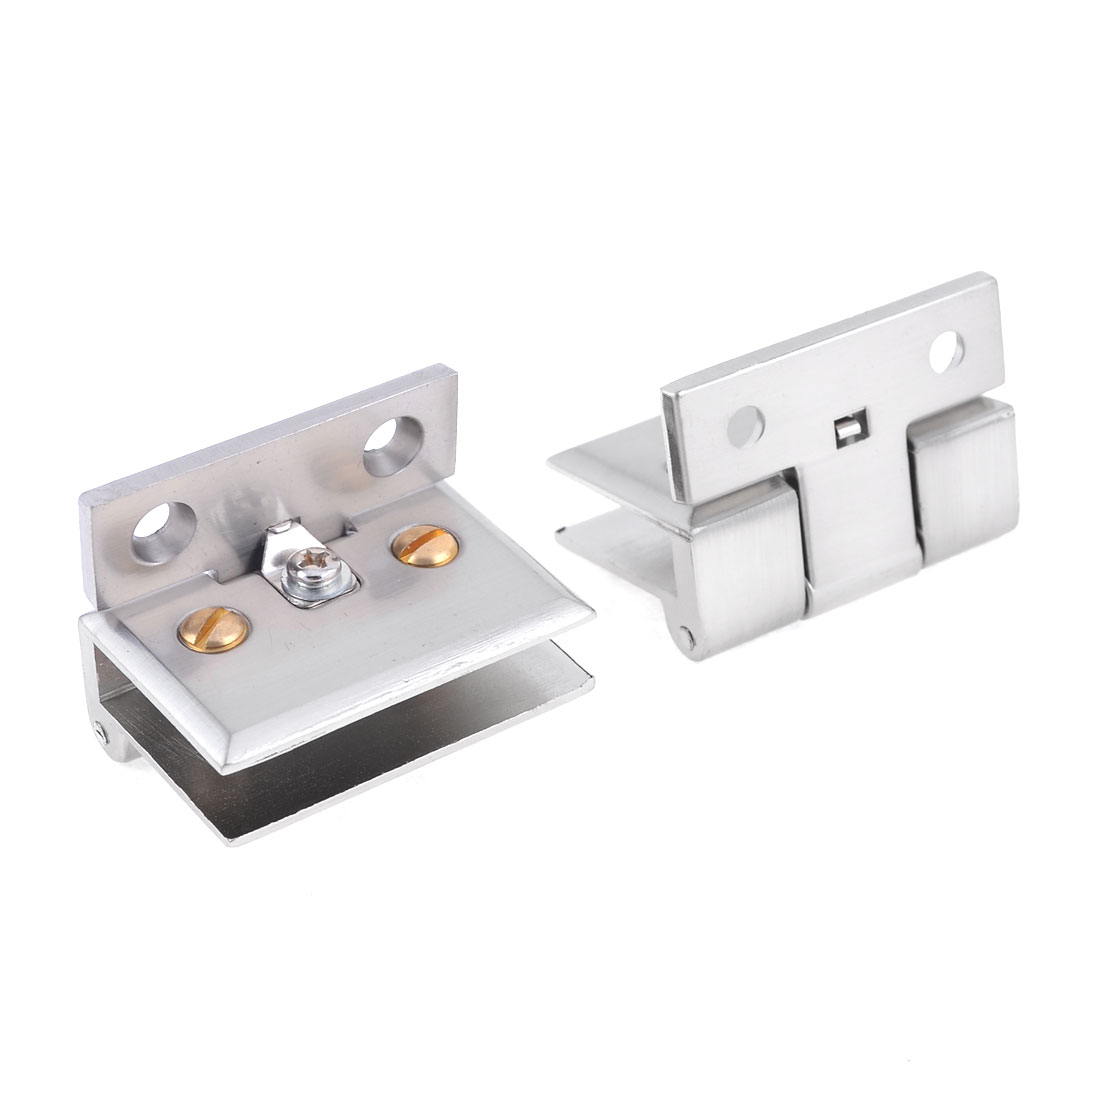 2 Pcs 48mm Length Stainless Steel Rectangular Shape Glass Clamp Clip Silver Tone